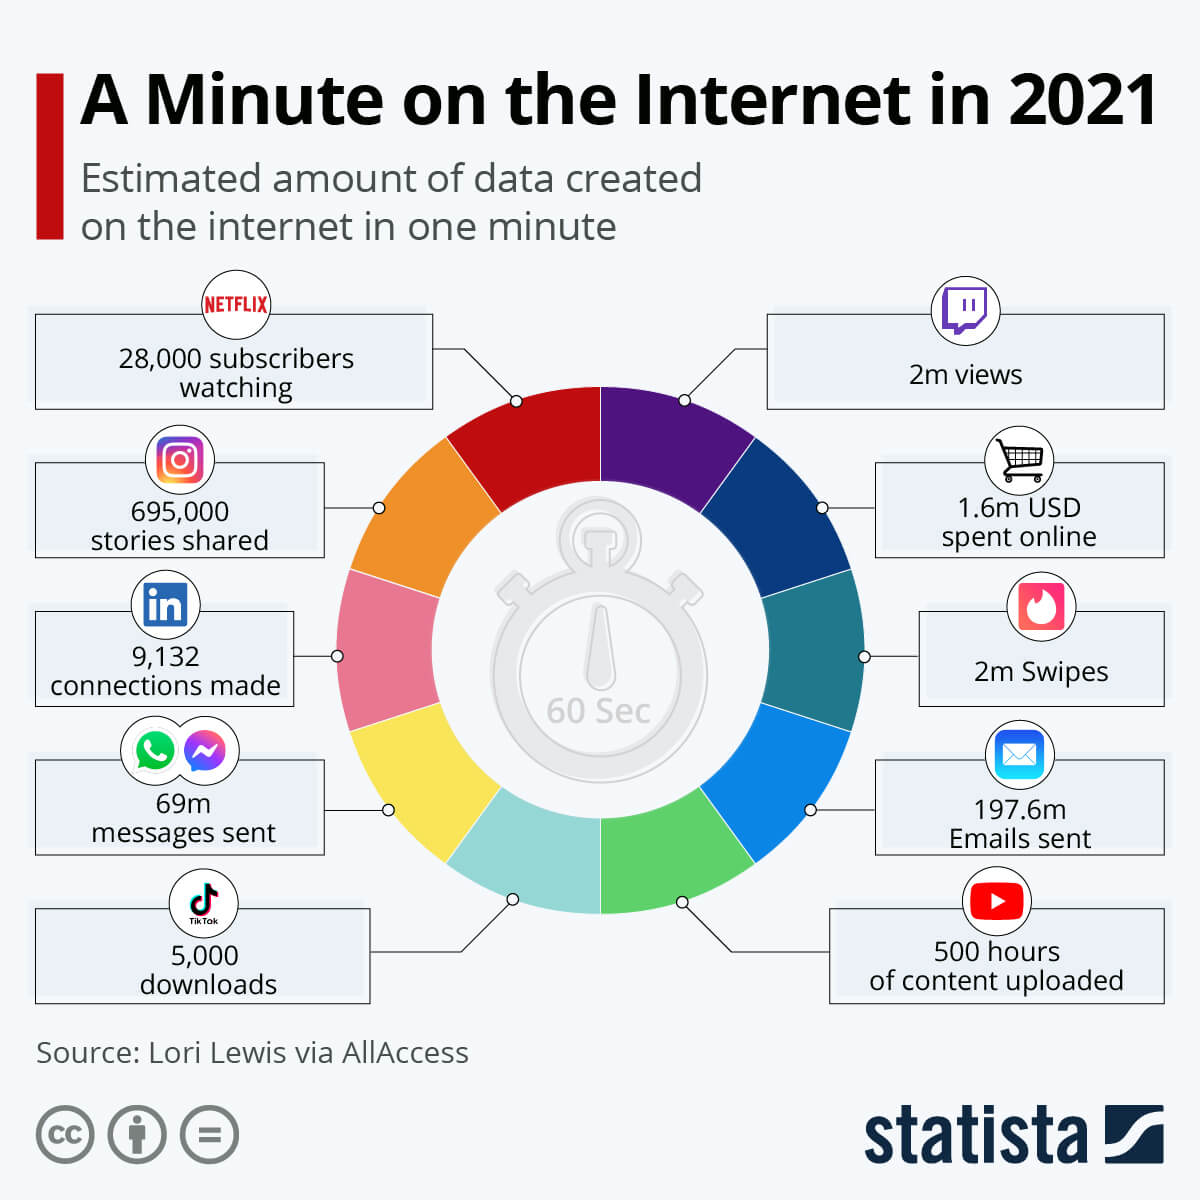 A Minute On The Internet In 2021